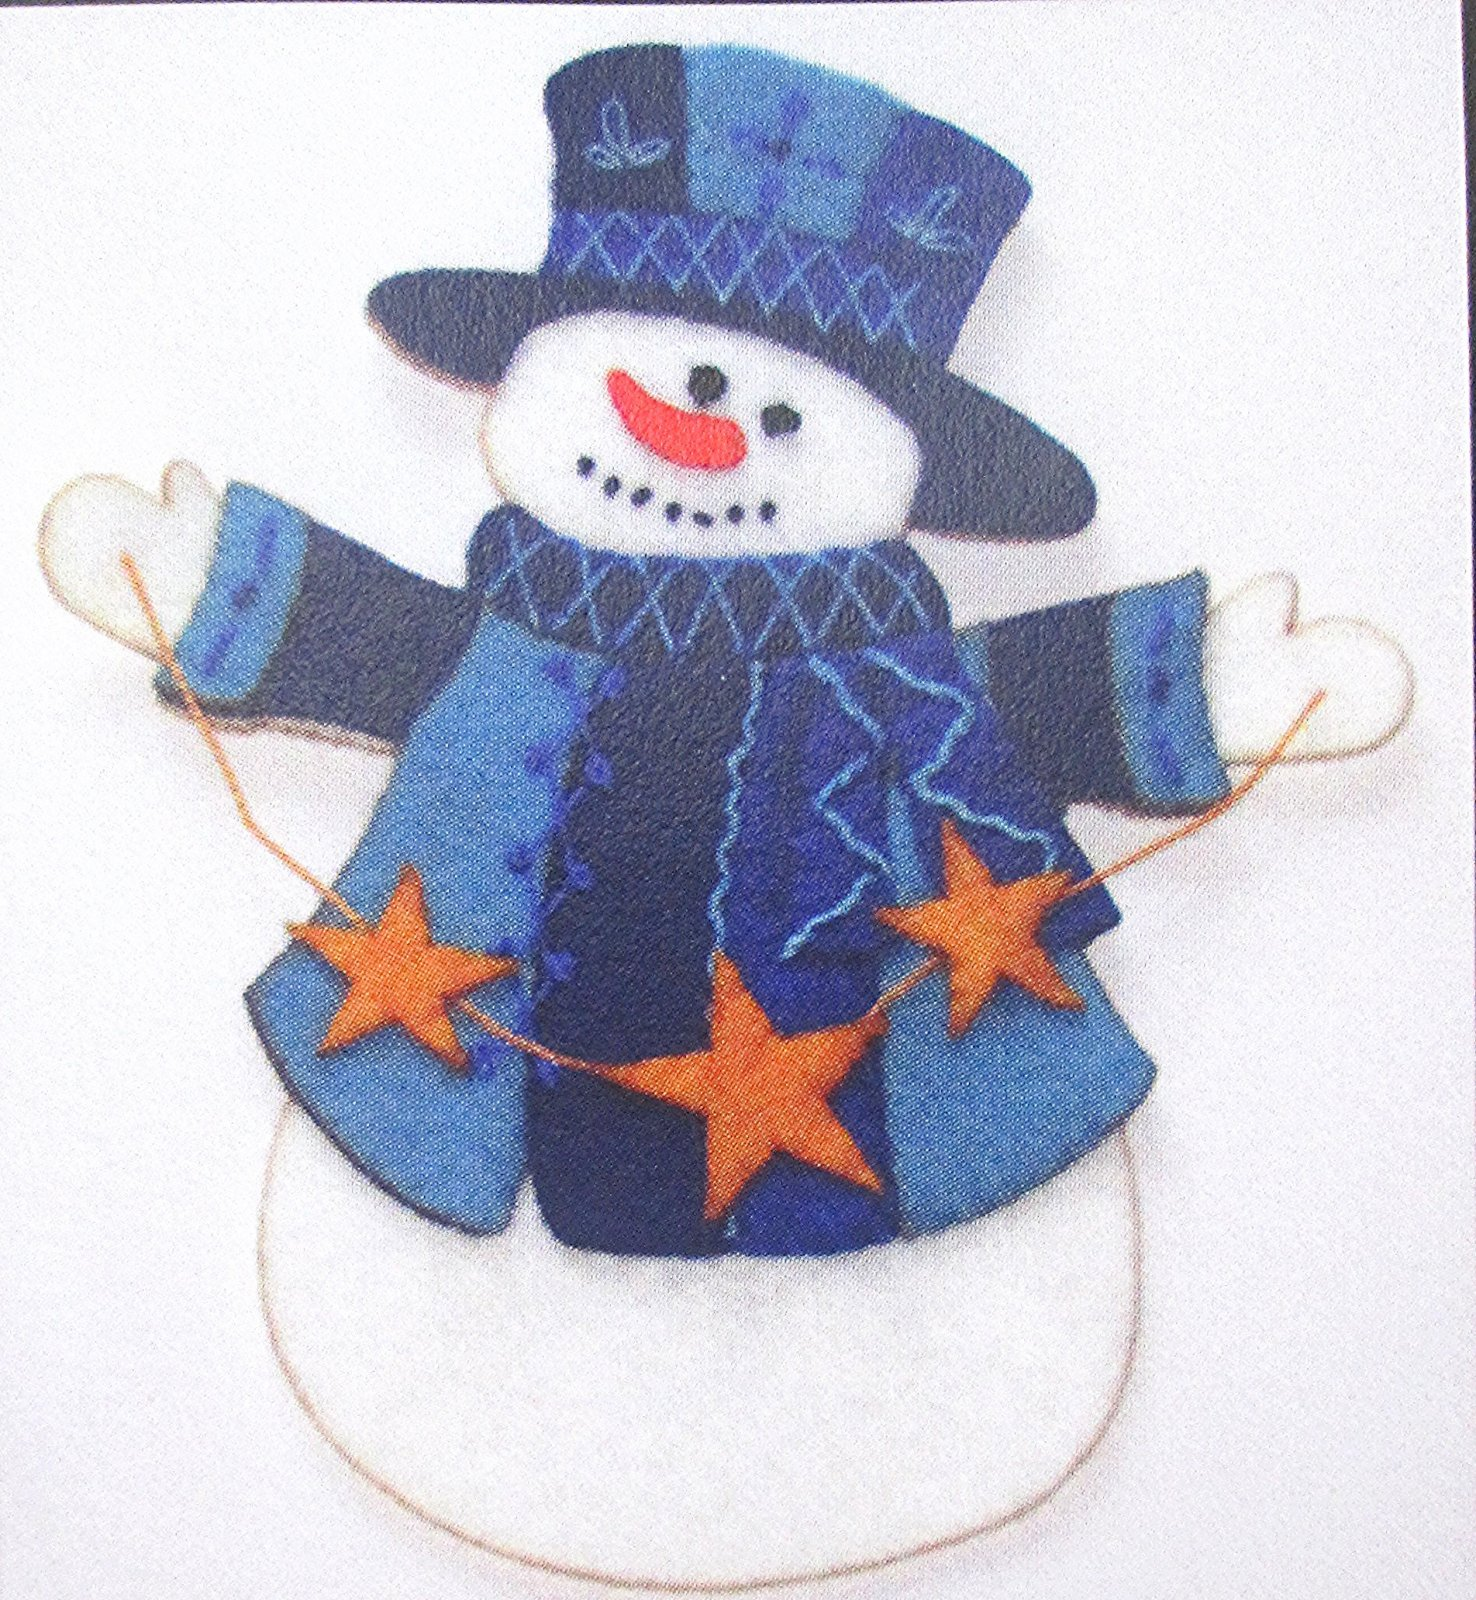 Artsi2 Winslow Snowman Ornament Kit 6.75 x 6